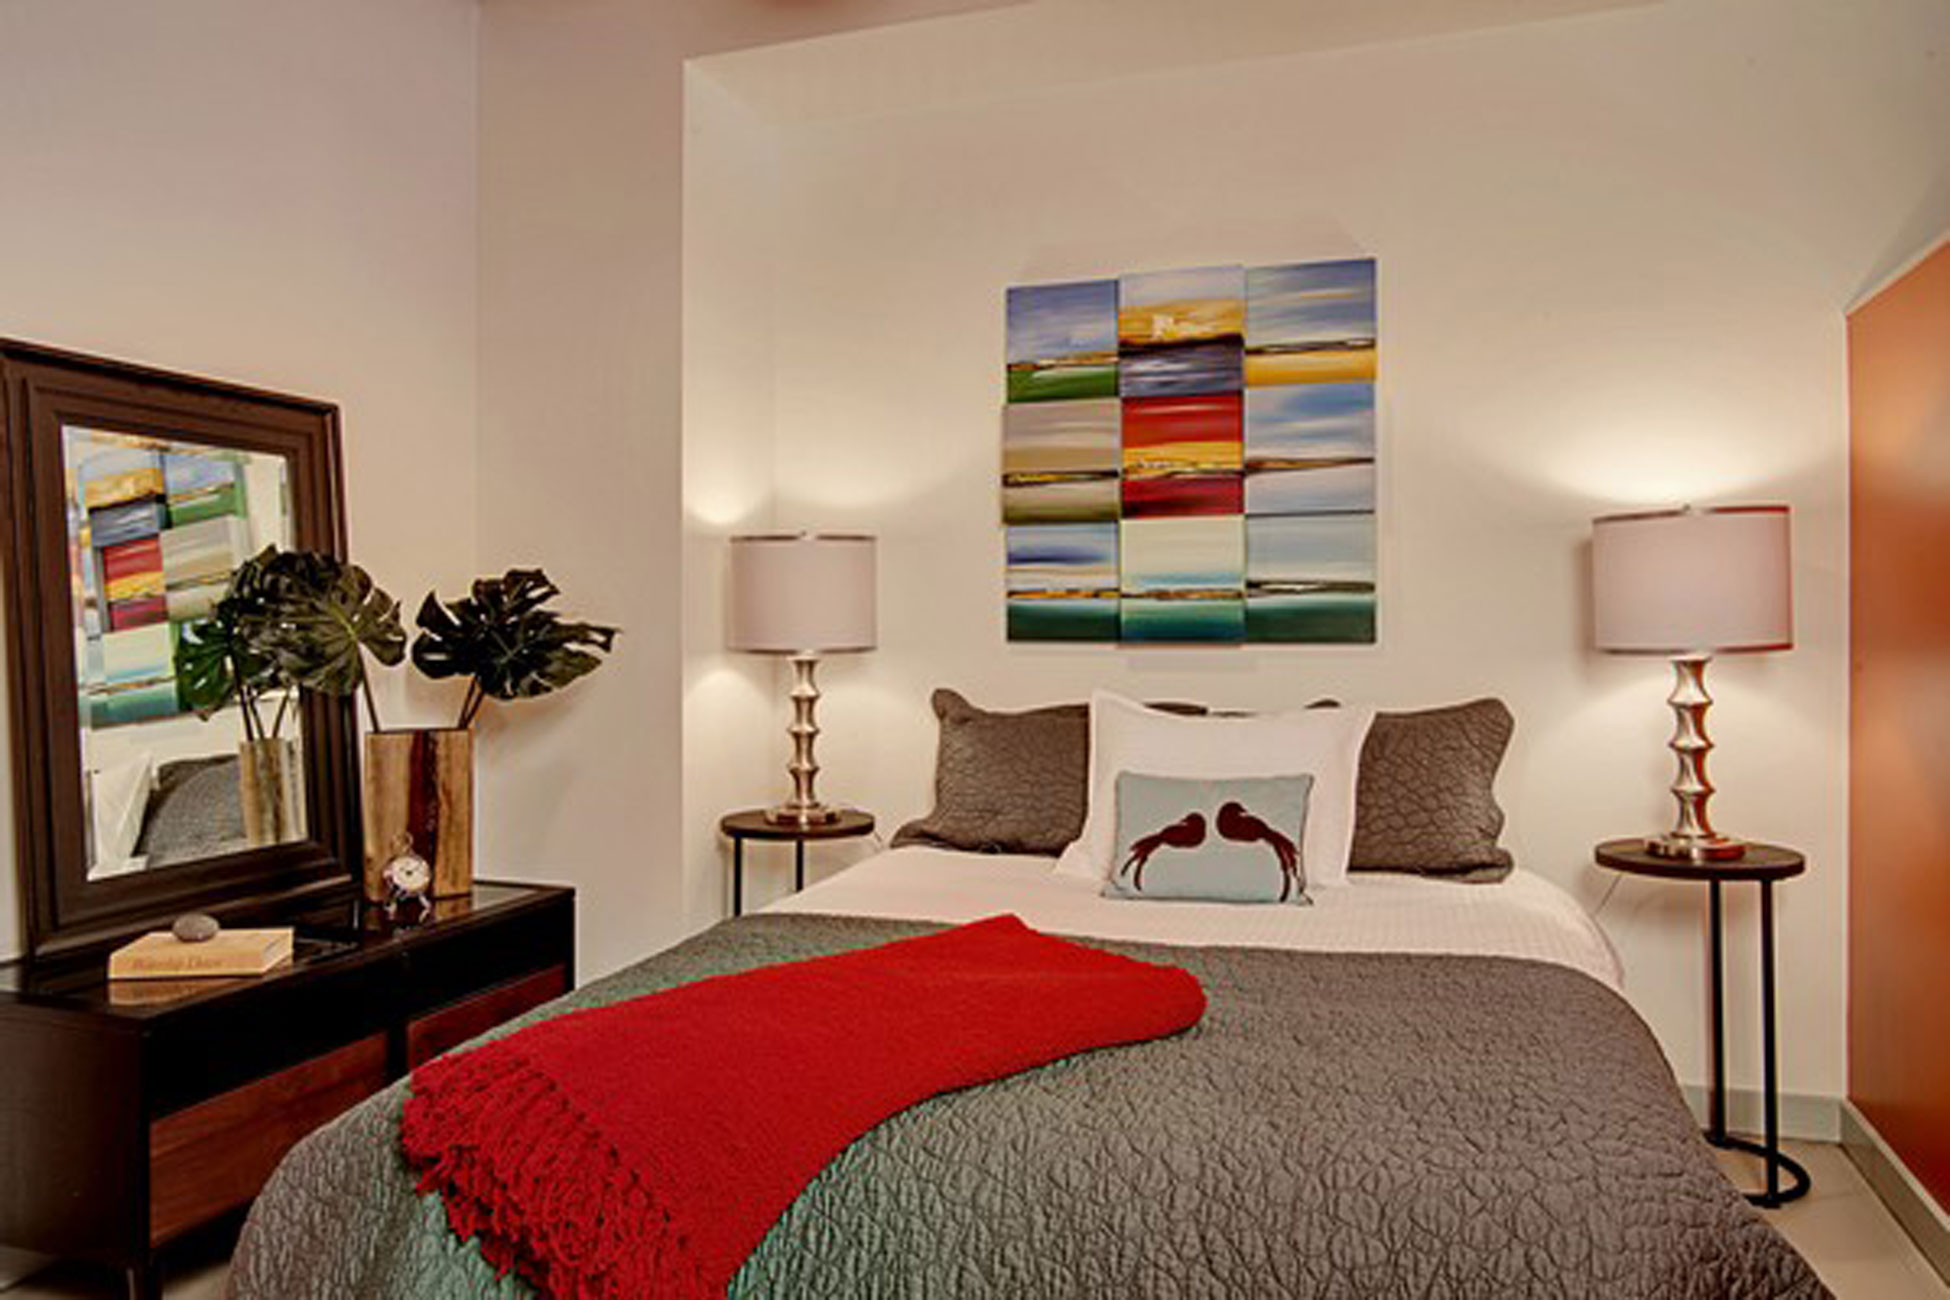 Apartment Bedroom Ideas A Little Apartment Bedroom Ideas  Midcityeast